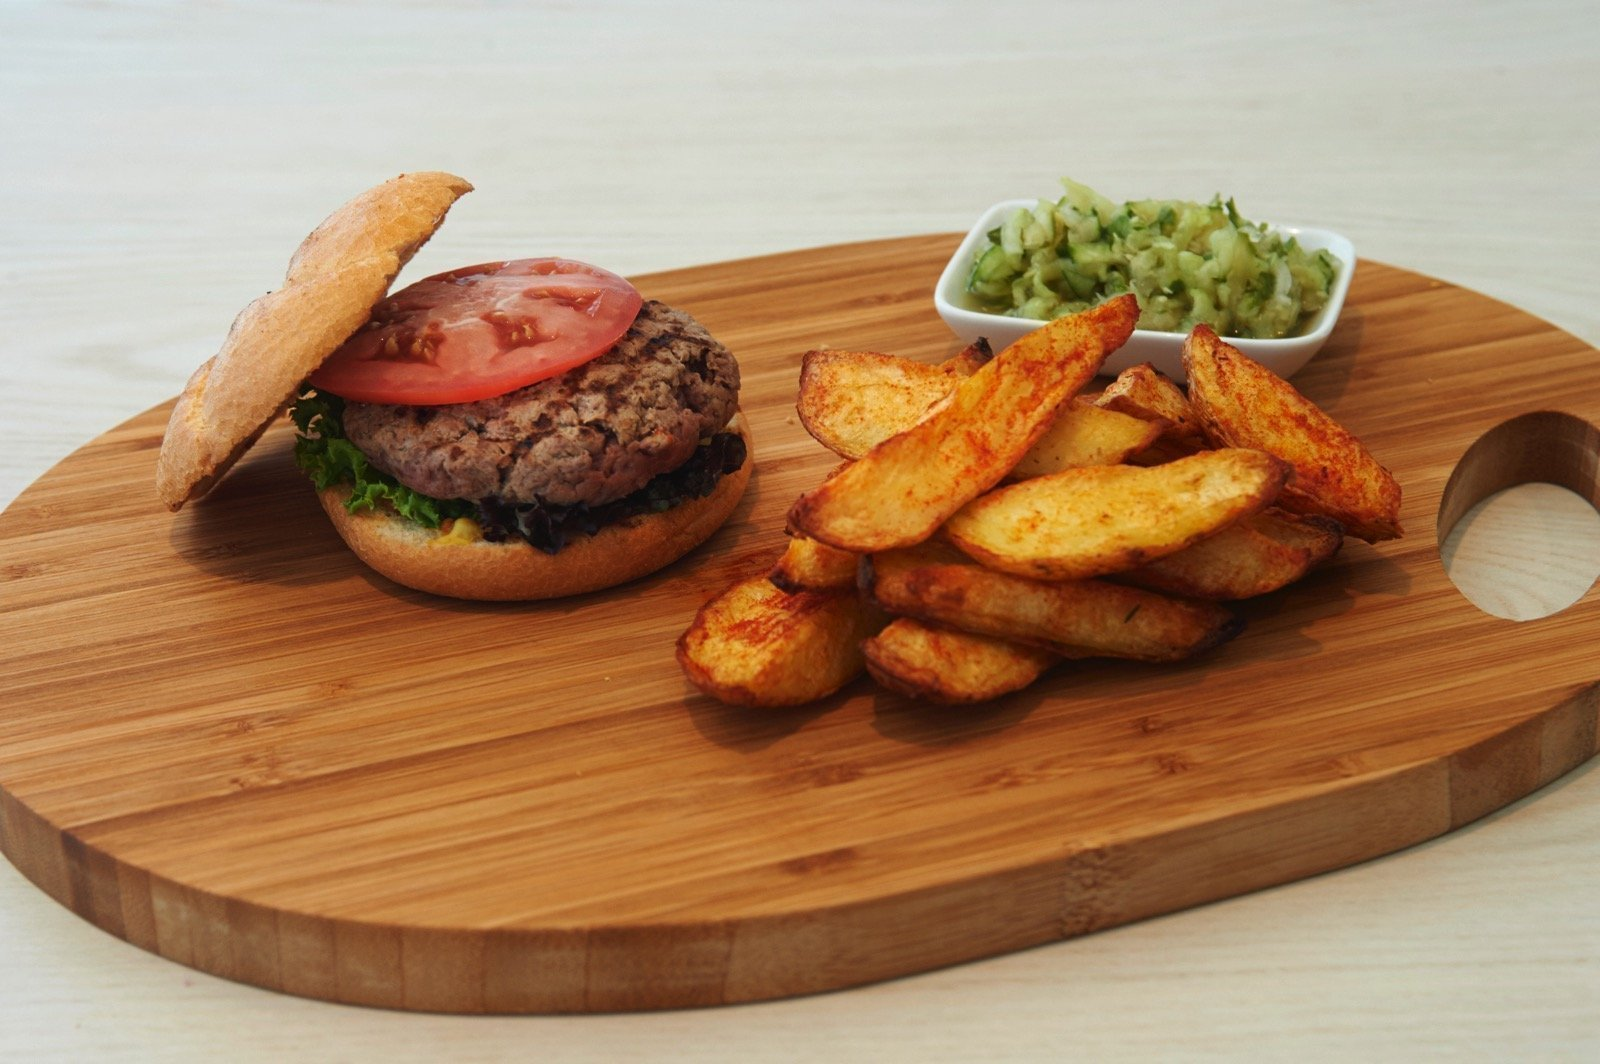 Mini Burgers filled with cheese *served with crunchy paprika potato wedges and a cucumber relish